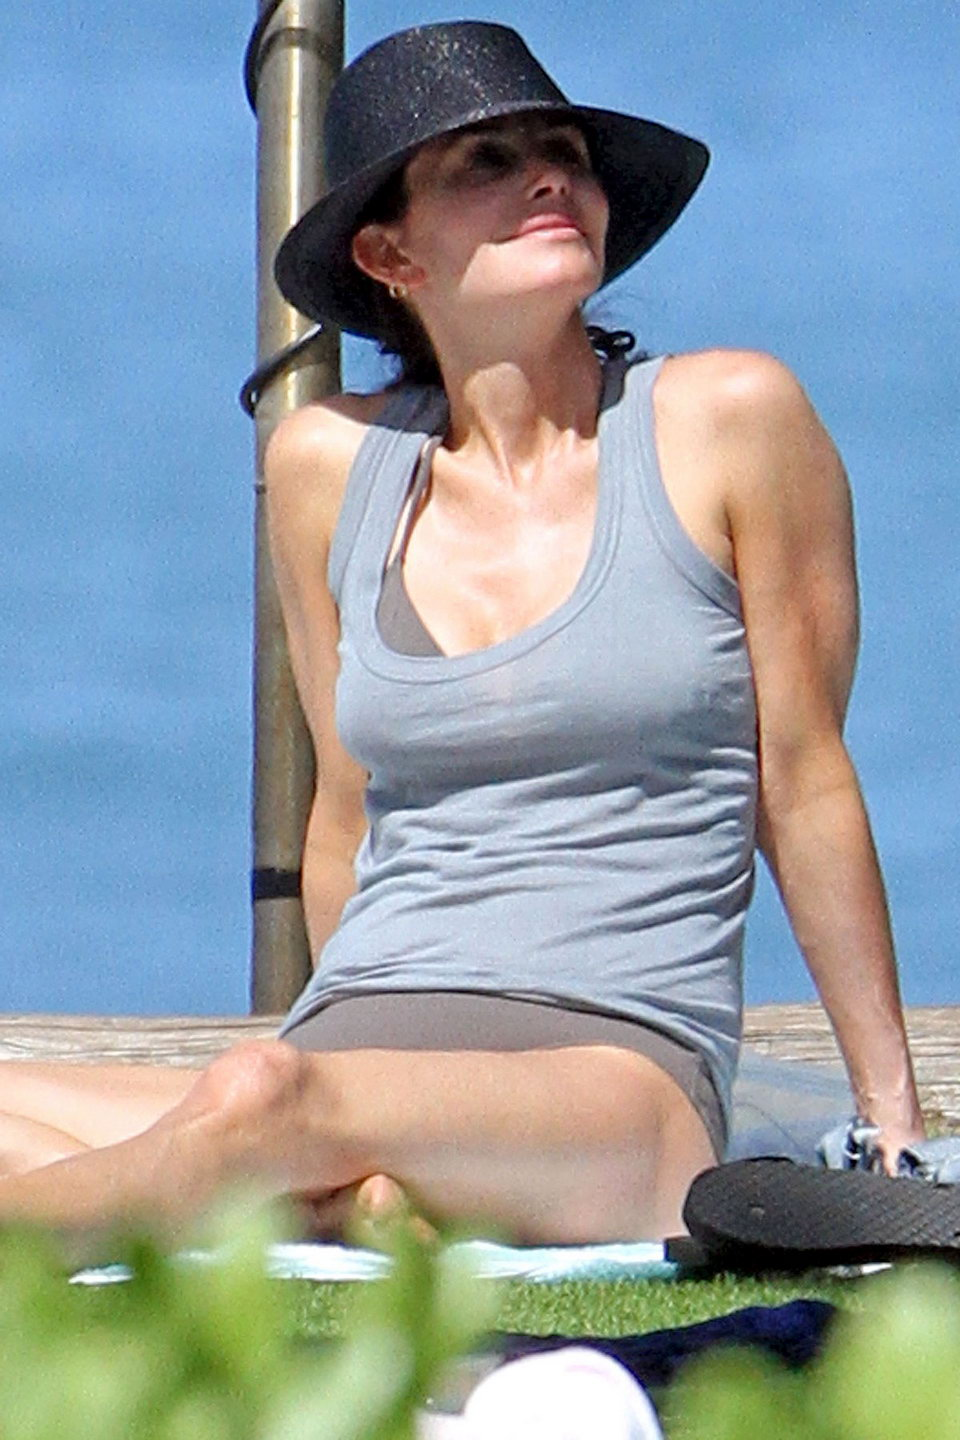 Now, let's enjoy the rest of Courtney Cox bikini photos below: